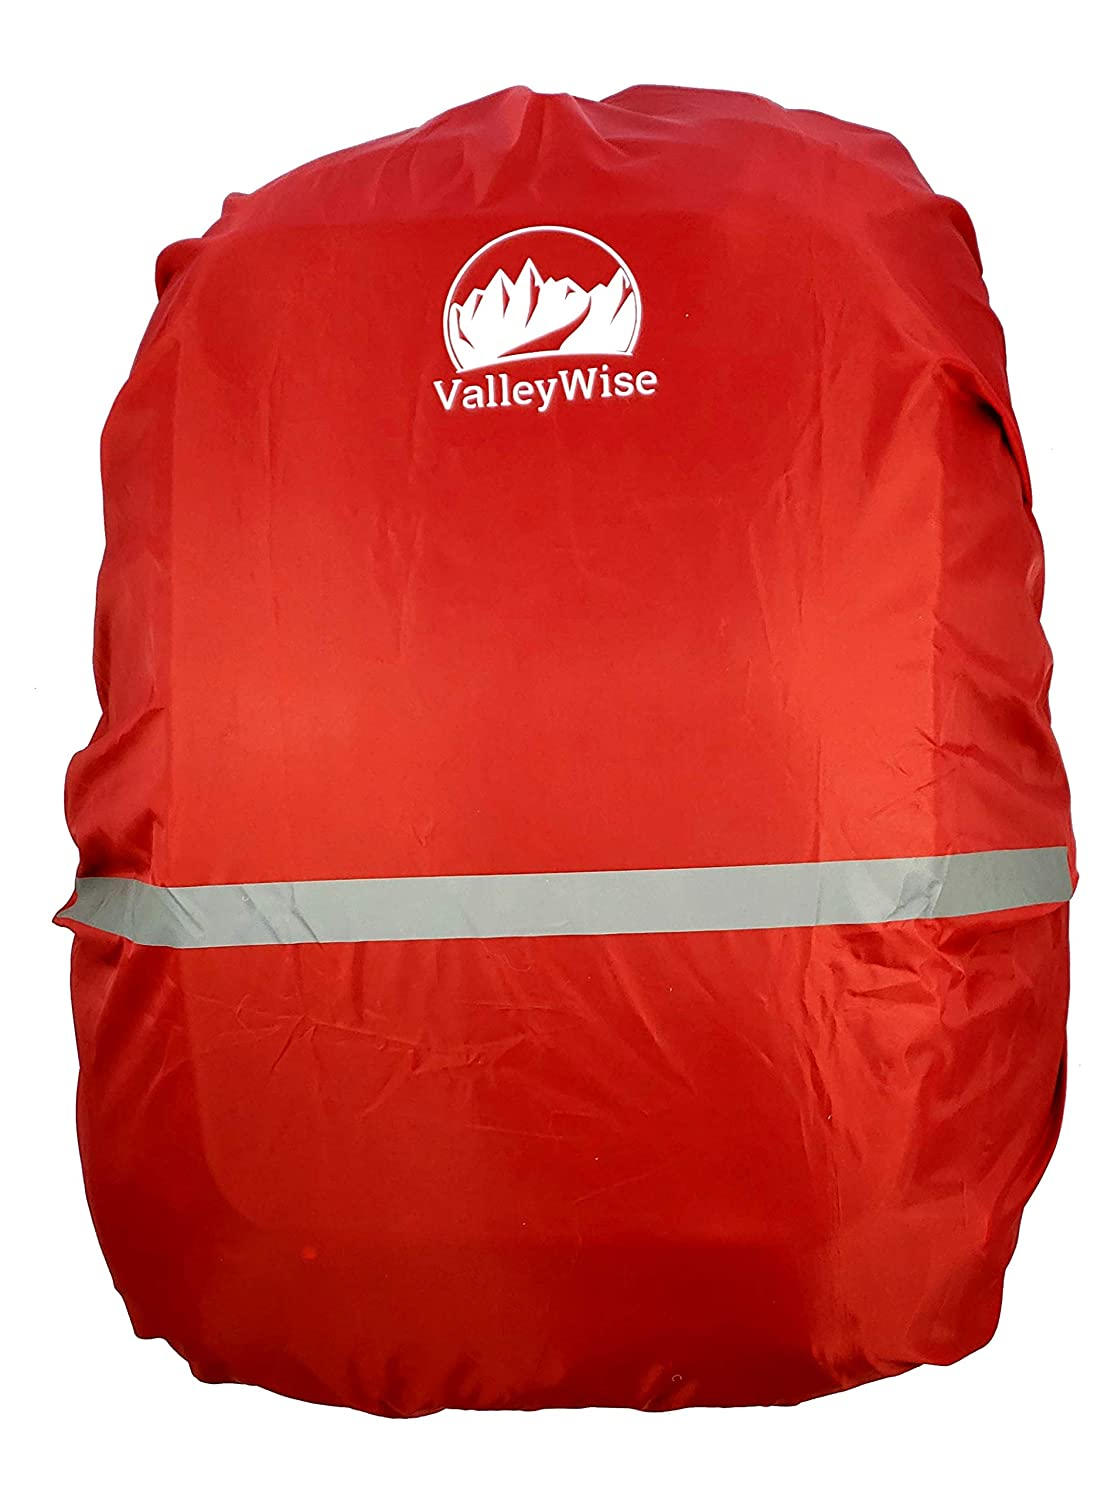 ValleyWise Waterproof Backpack Rain Cover | ONE Size FITS All Standard Backpacks | Premium Quality | Hiking, Camping, Traveling, Cycling, Outdoors | Non-Slip Buckle | Reflective Strip (Black) ValleyWise Products